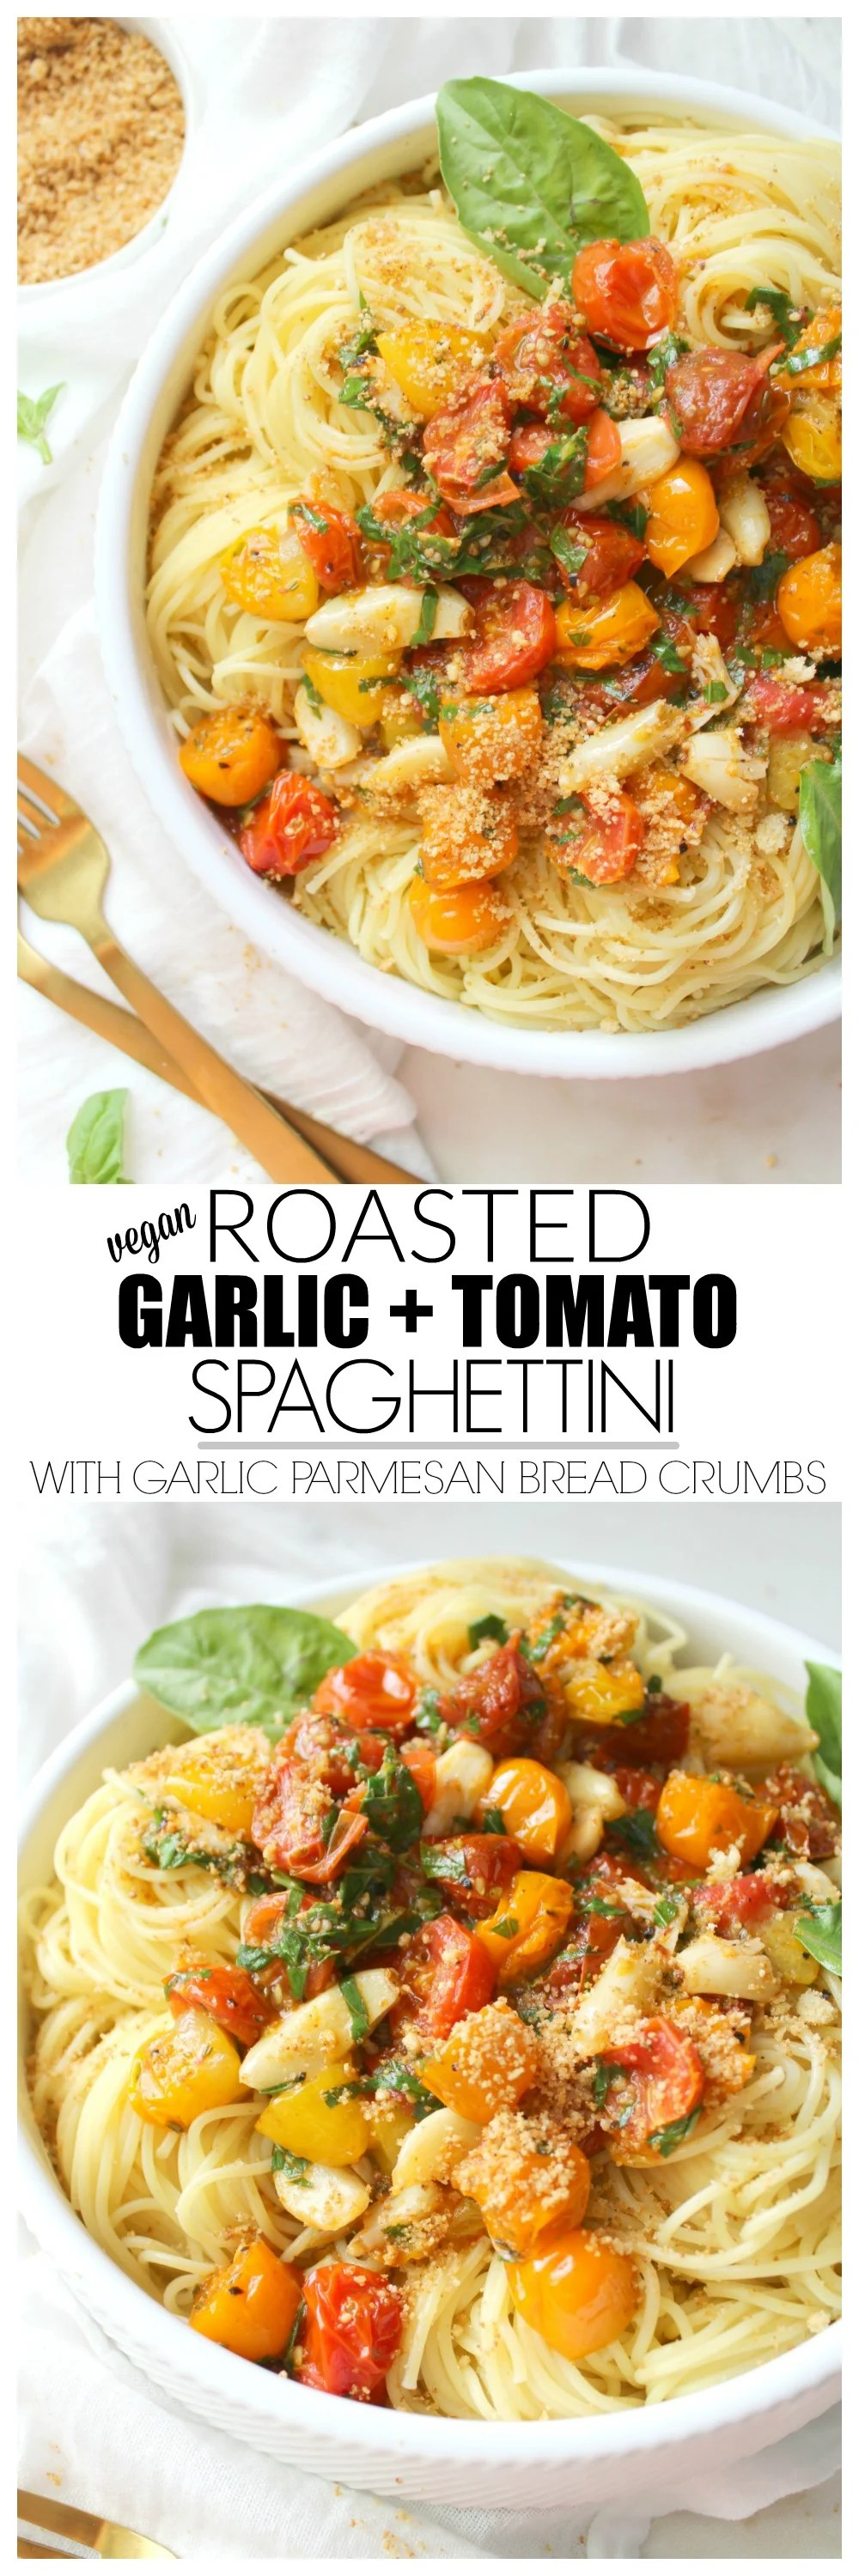 Roasted Garlic Tomato Spaghettini with Garlic Parmesan Bread Crumbs | ThisSavoryVegan.com